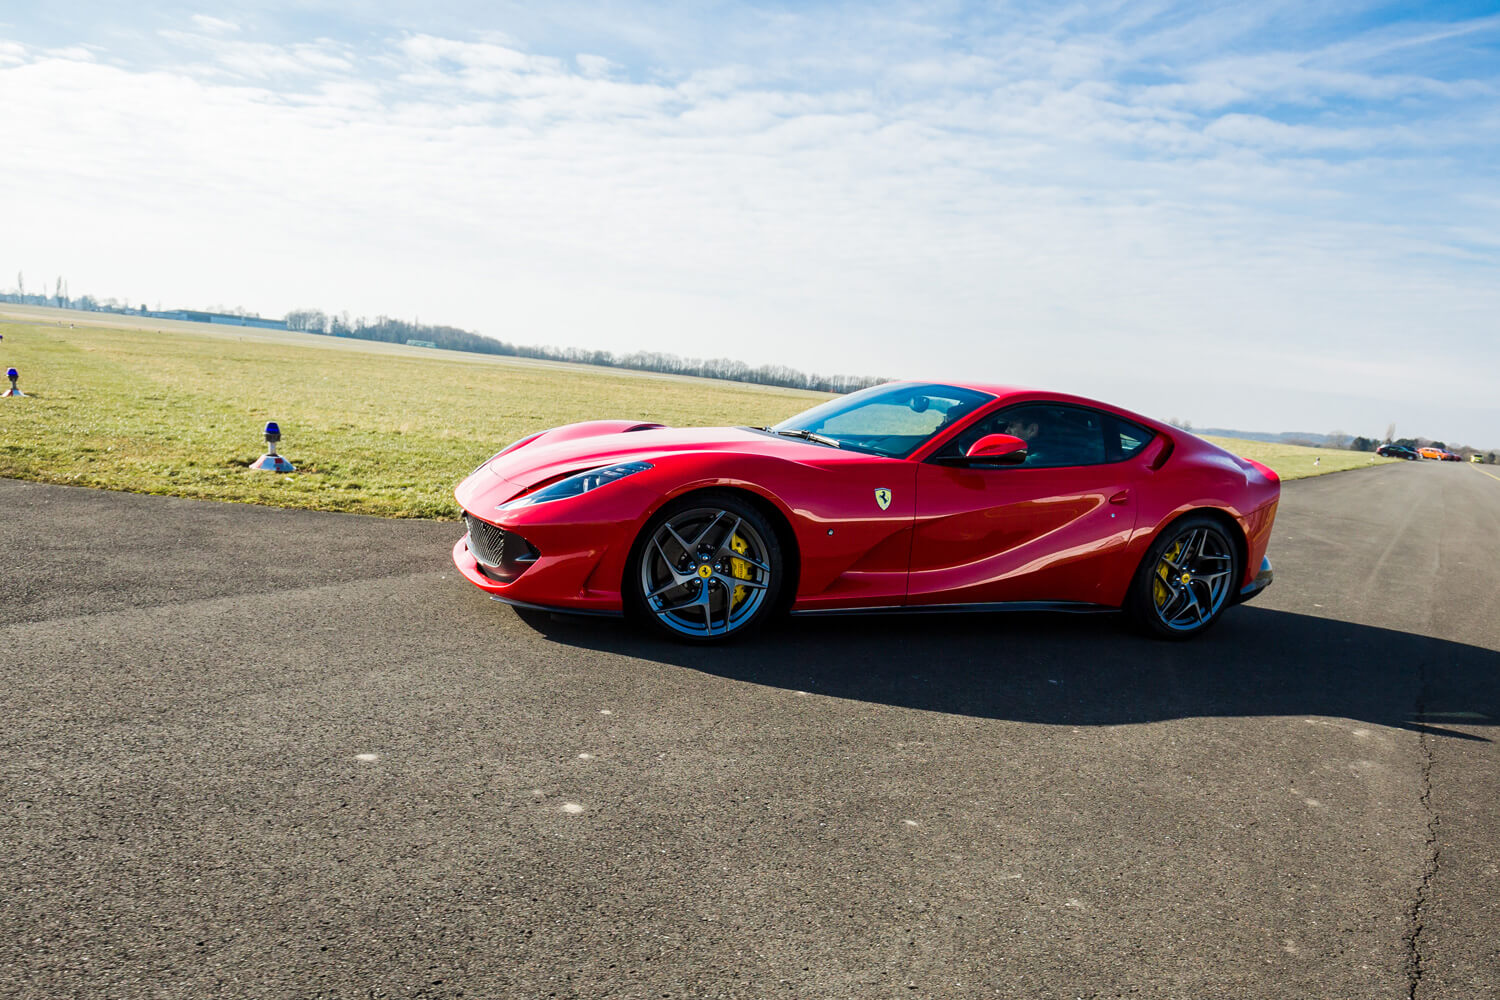 Ken Okuyama drives the Ferrari Portofino